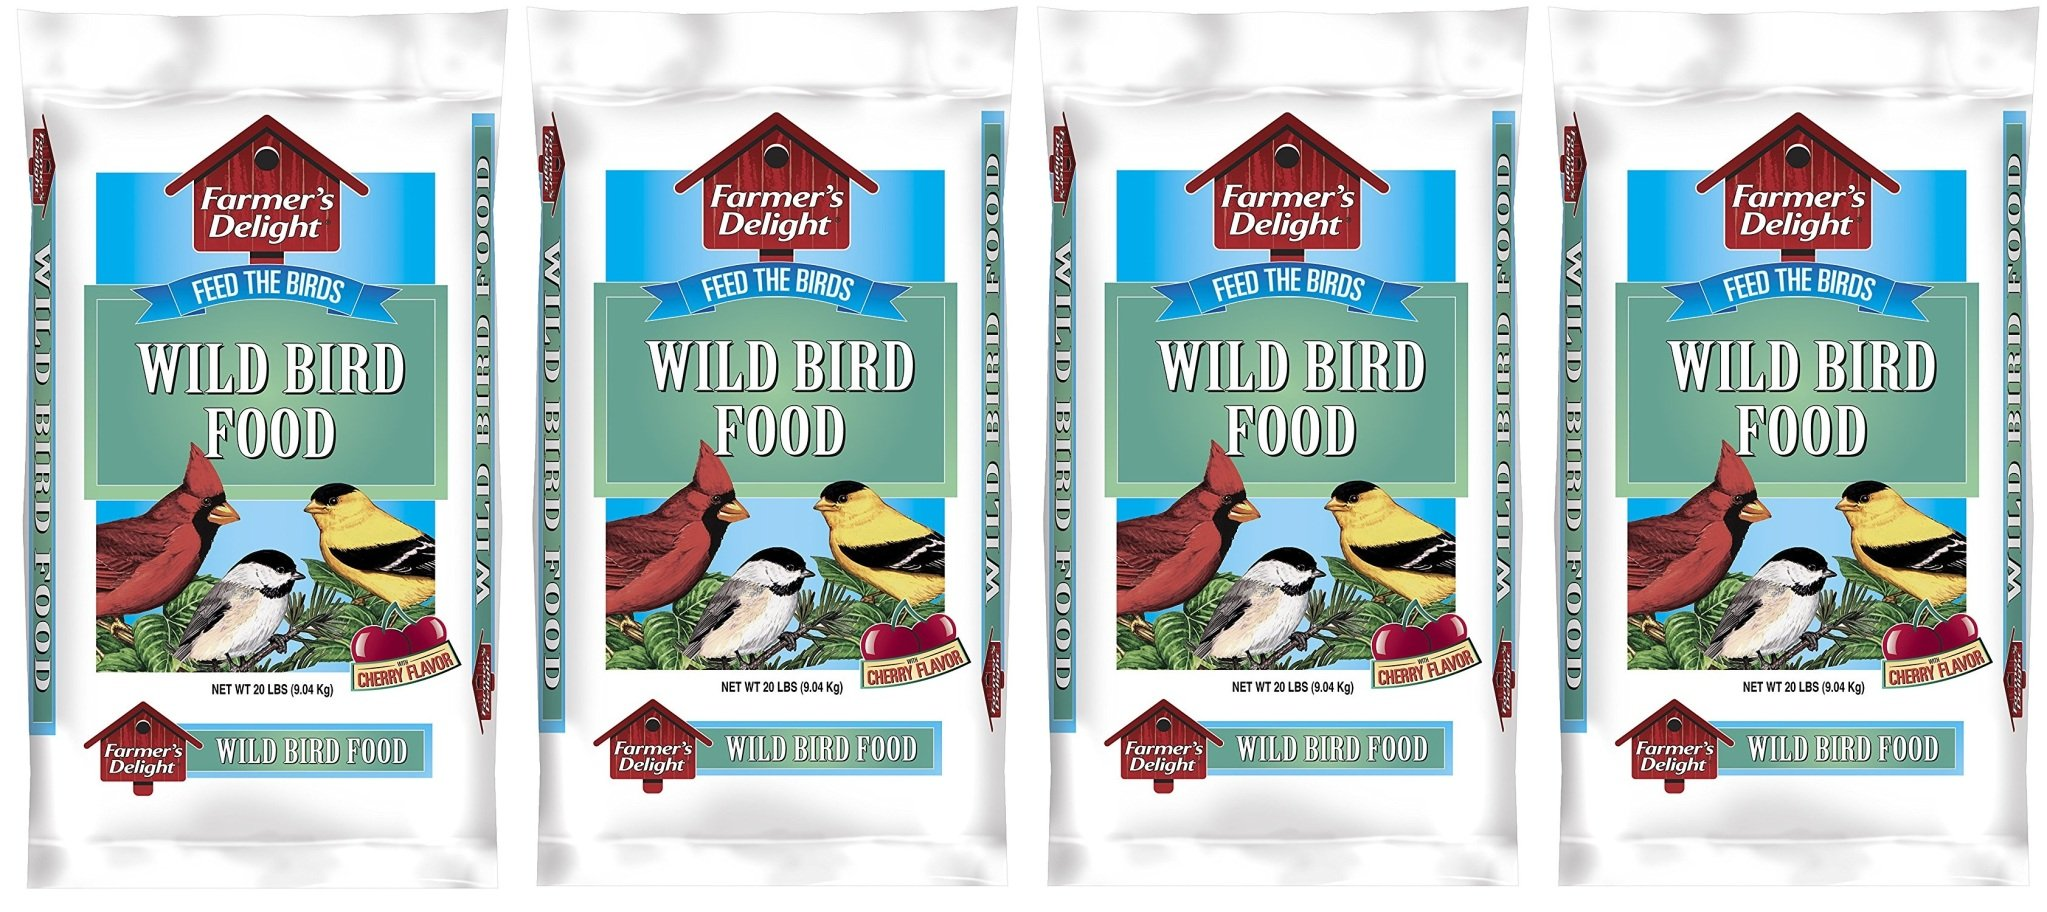 Wagners 53002 Farmers Delight Wild Bird Food, With Cherry Flavor, 20-Pound Bag, Qpwutz 4Pack (20-Pound Bag) by Wagner's